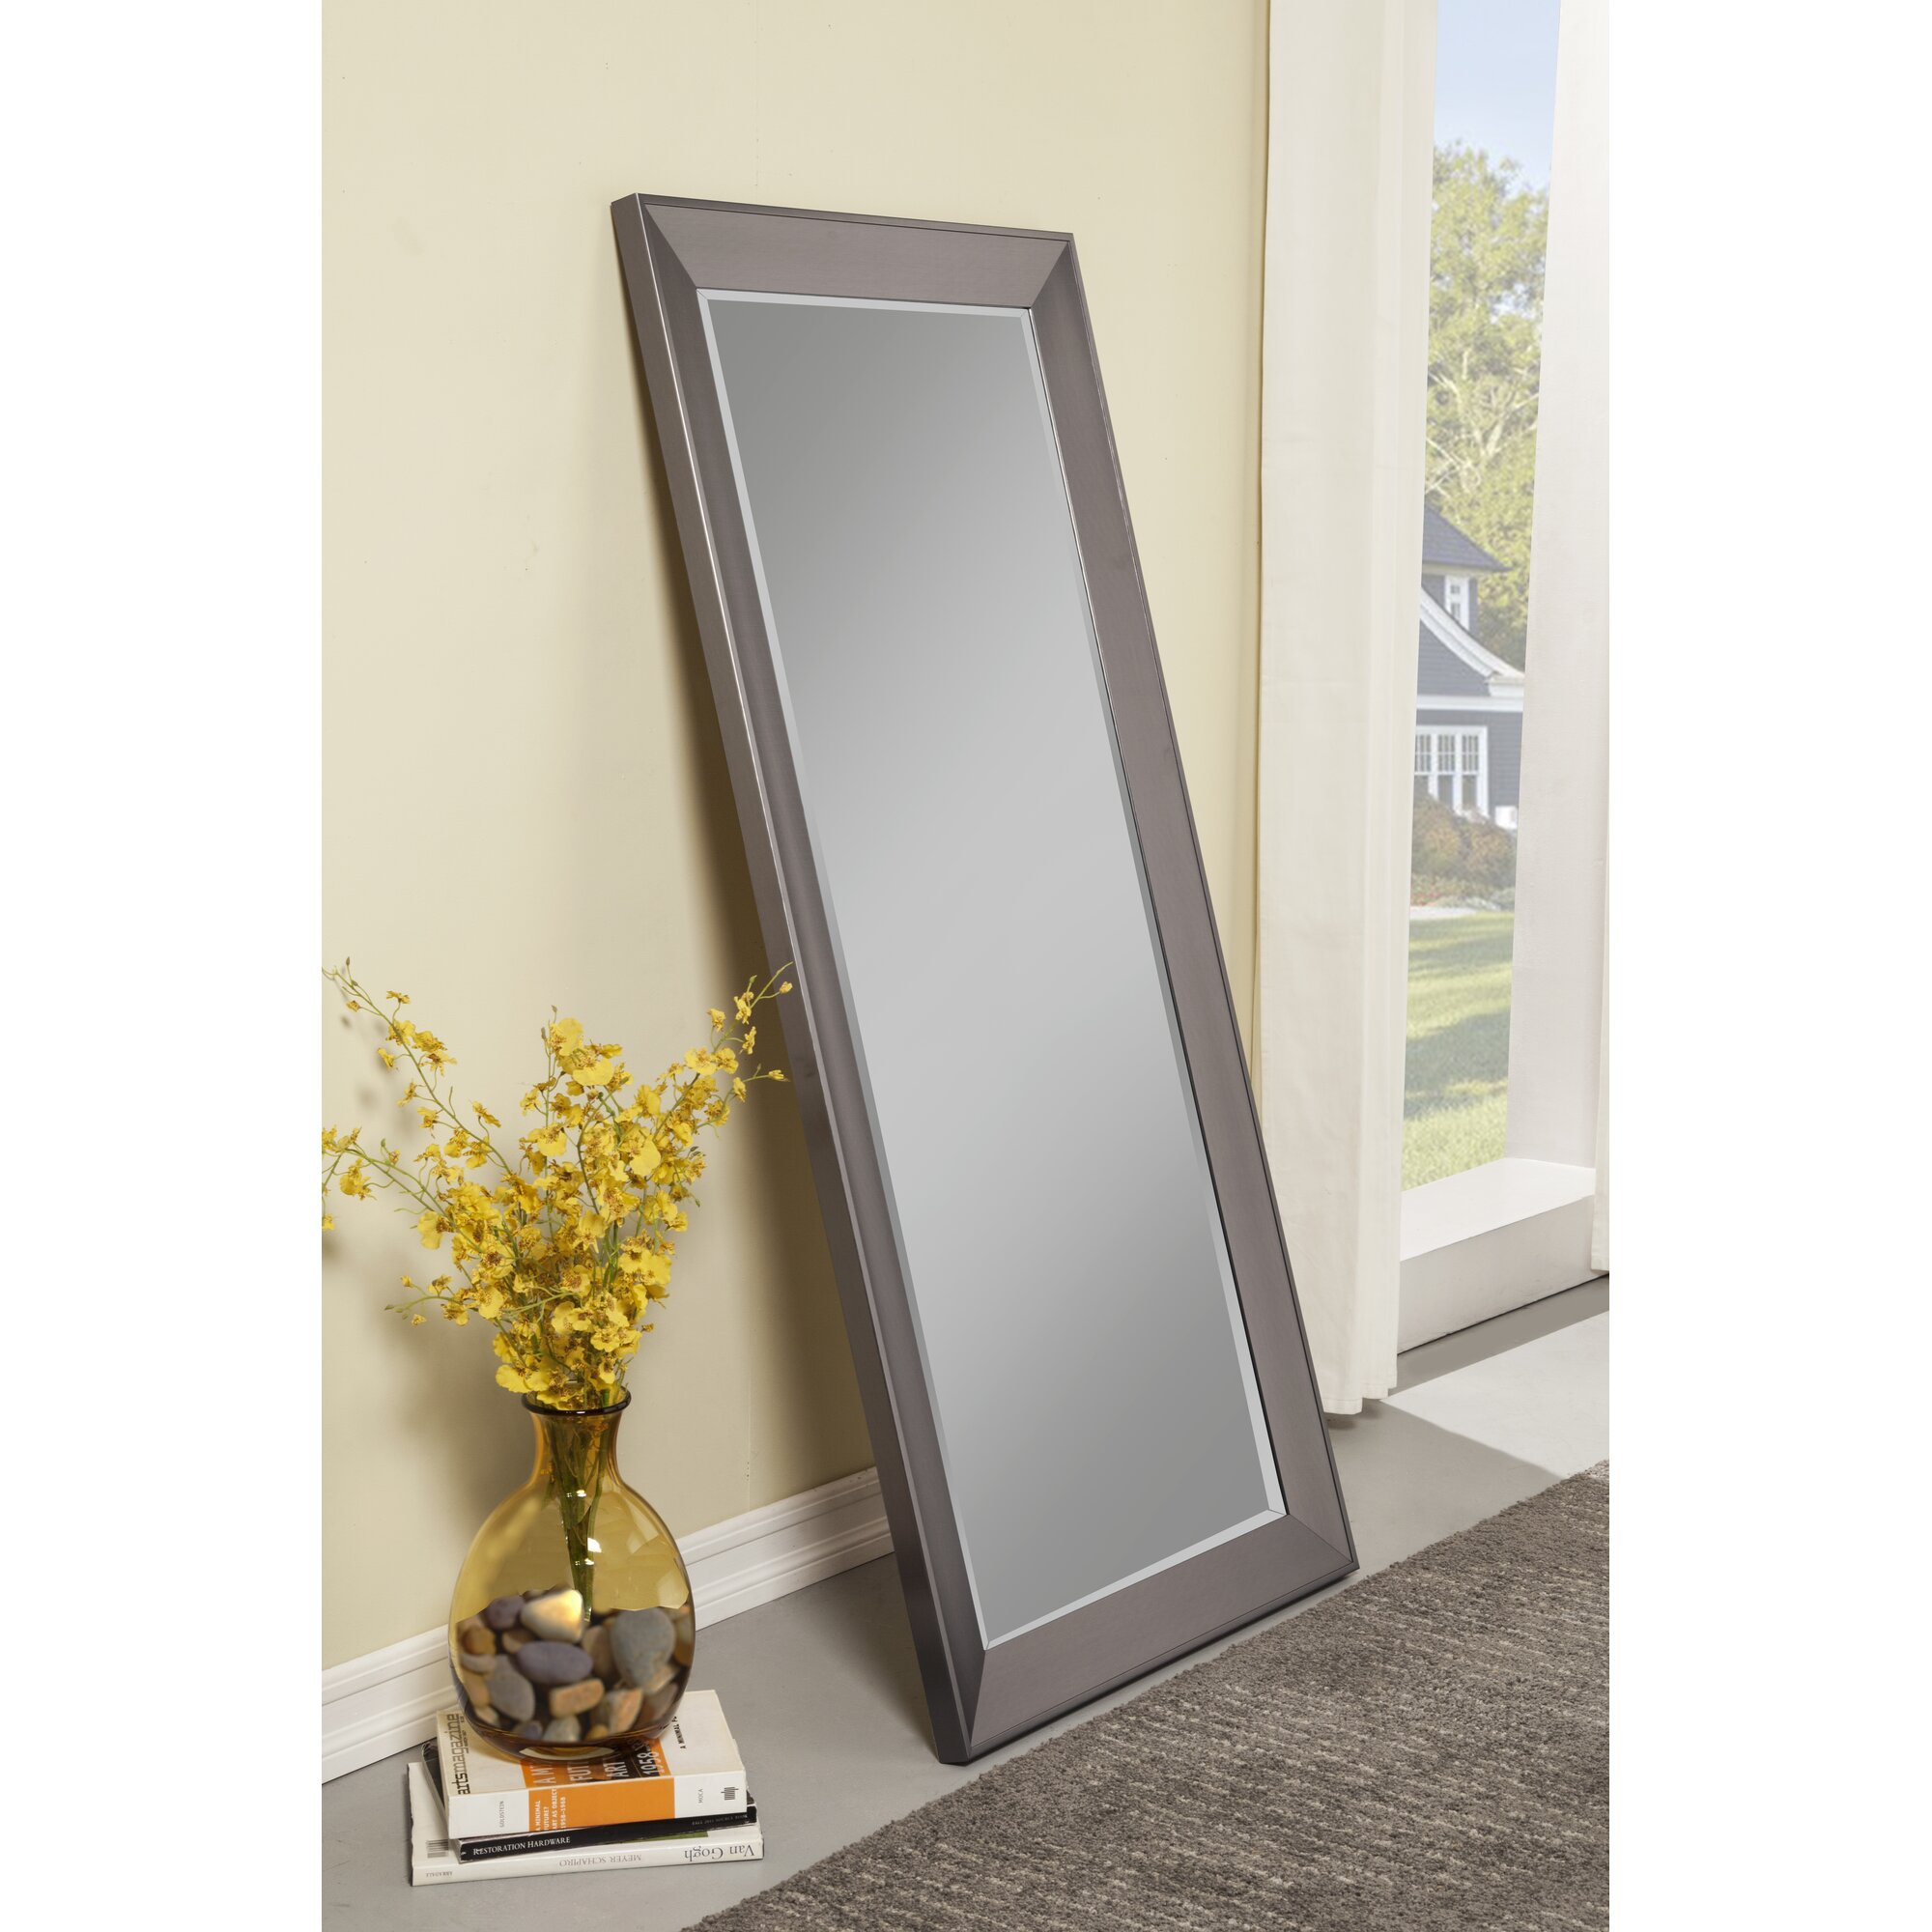 Floor Mirrors Youll Love Wayfair - Decorative gold mirrors